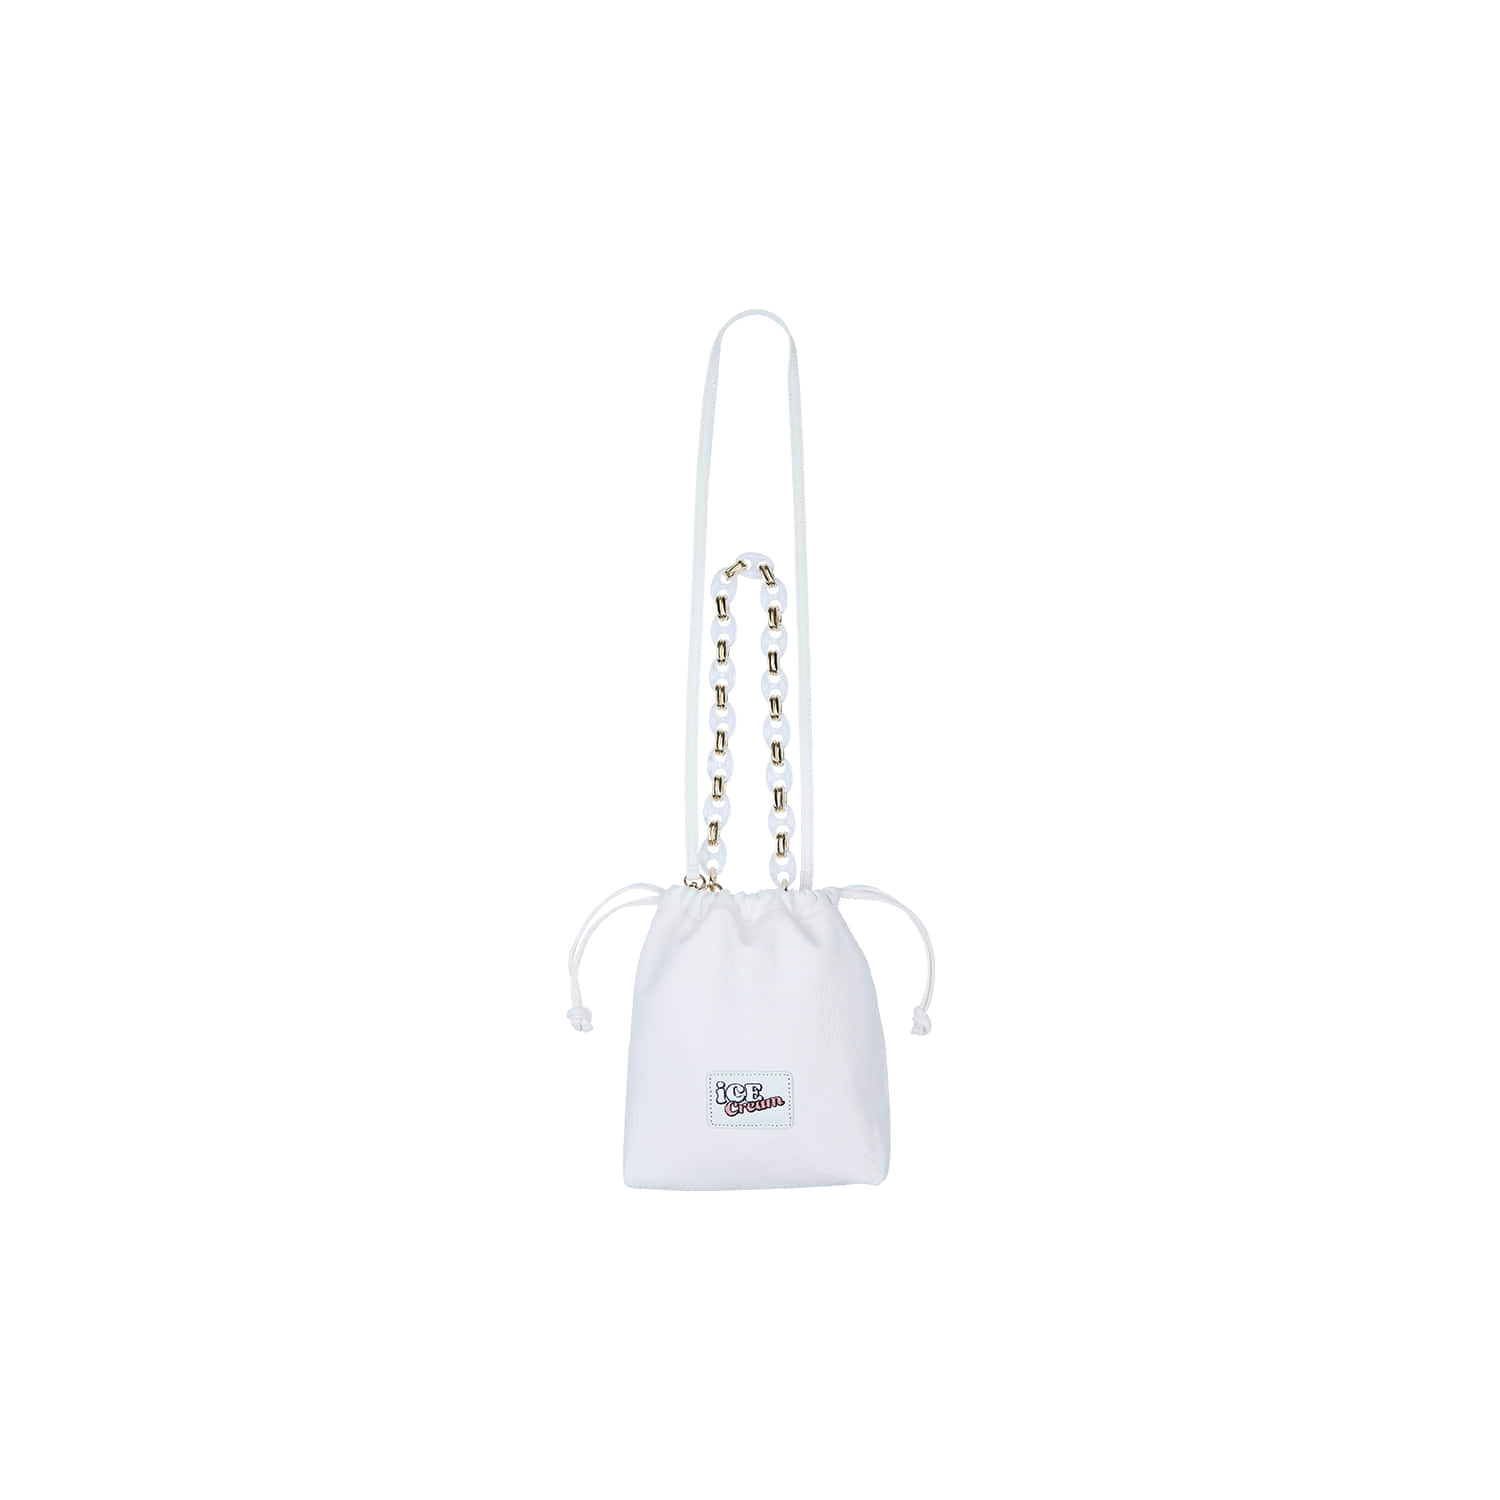 [ICECREAM] BLACKPINK BUCKET BAG